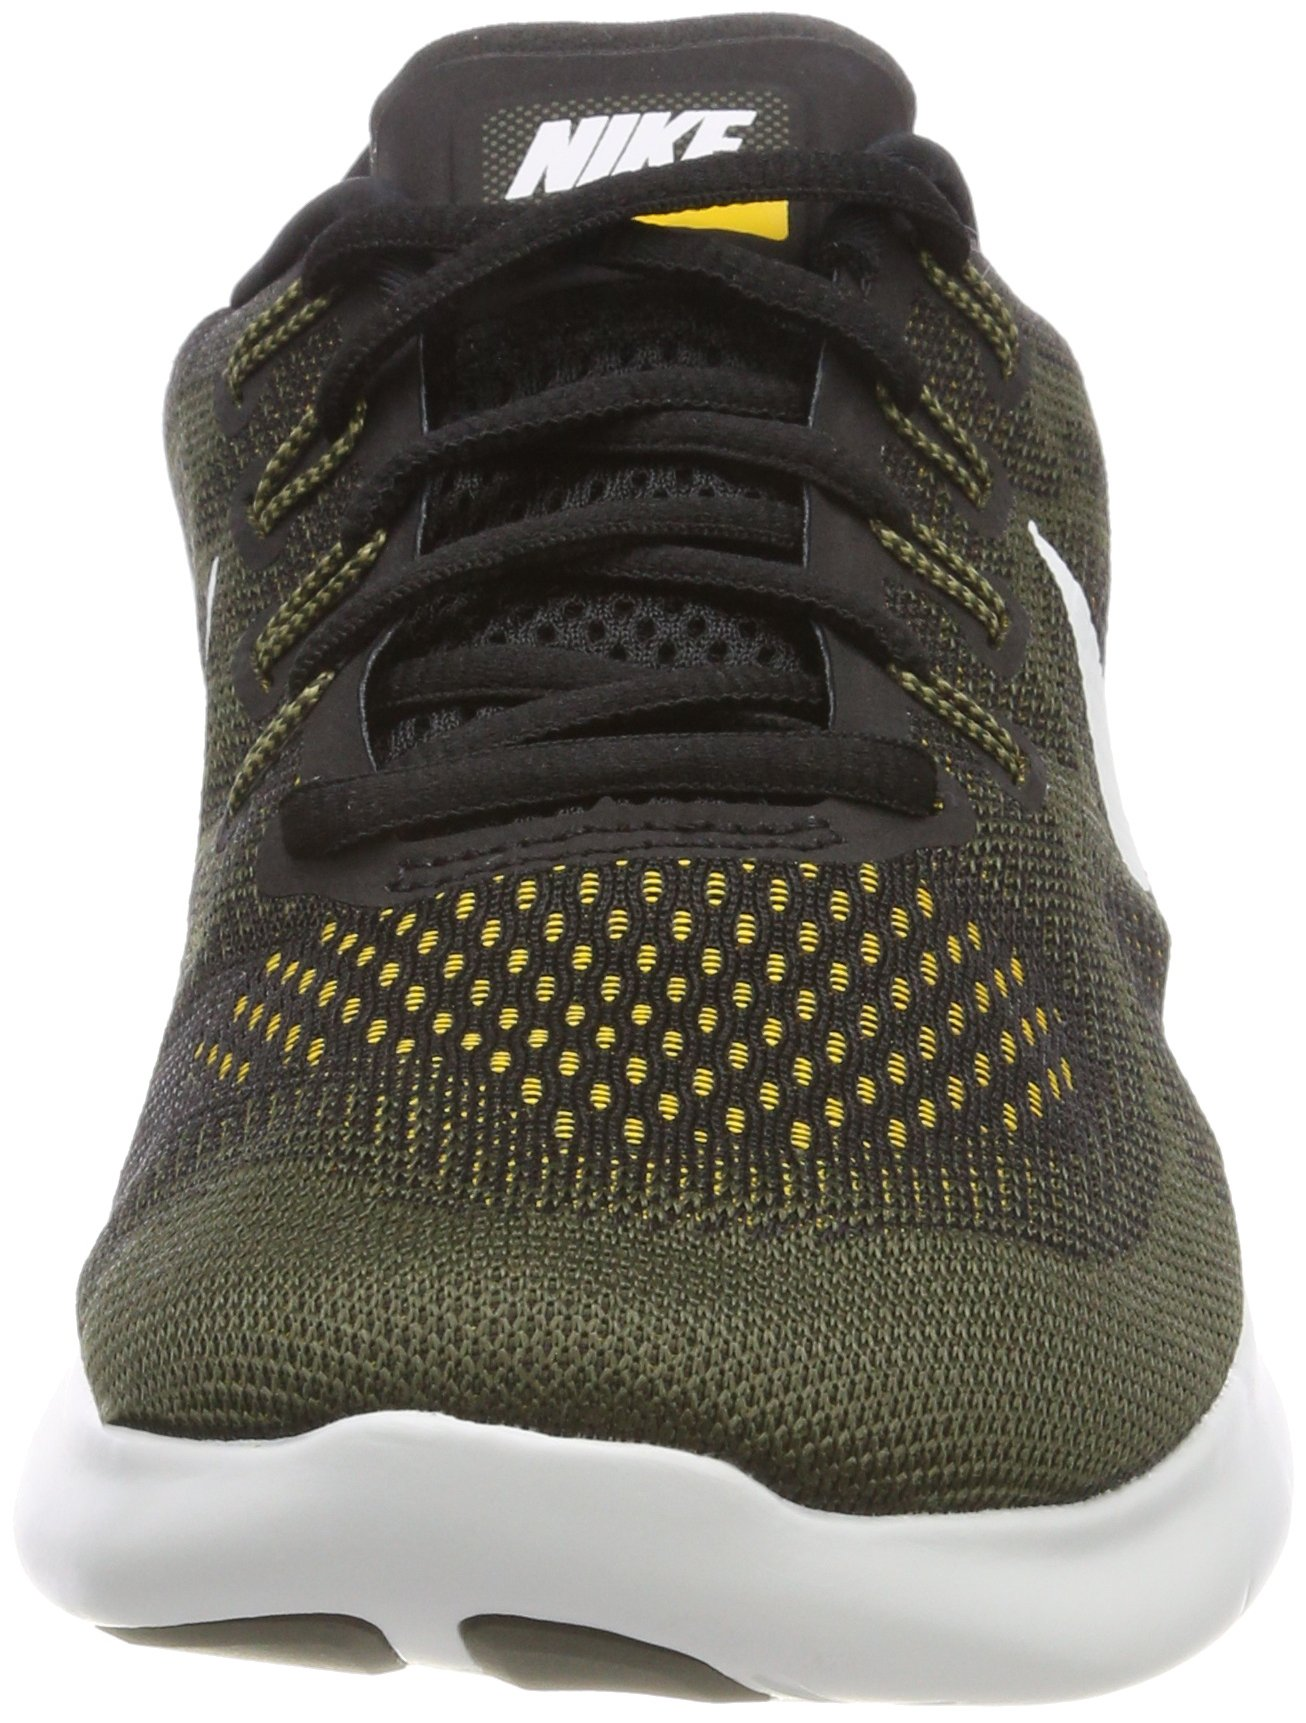 NIKE Free Rn 2017 Mens Style: 880839-008 Size: 8 by Nike (Image #4)